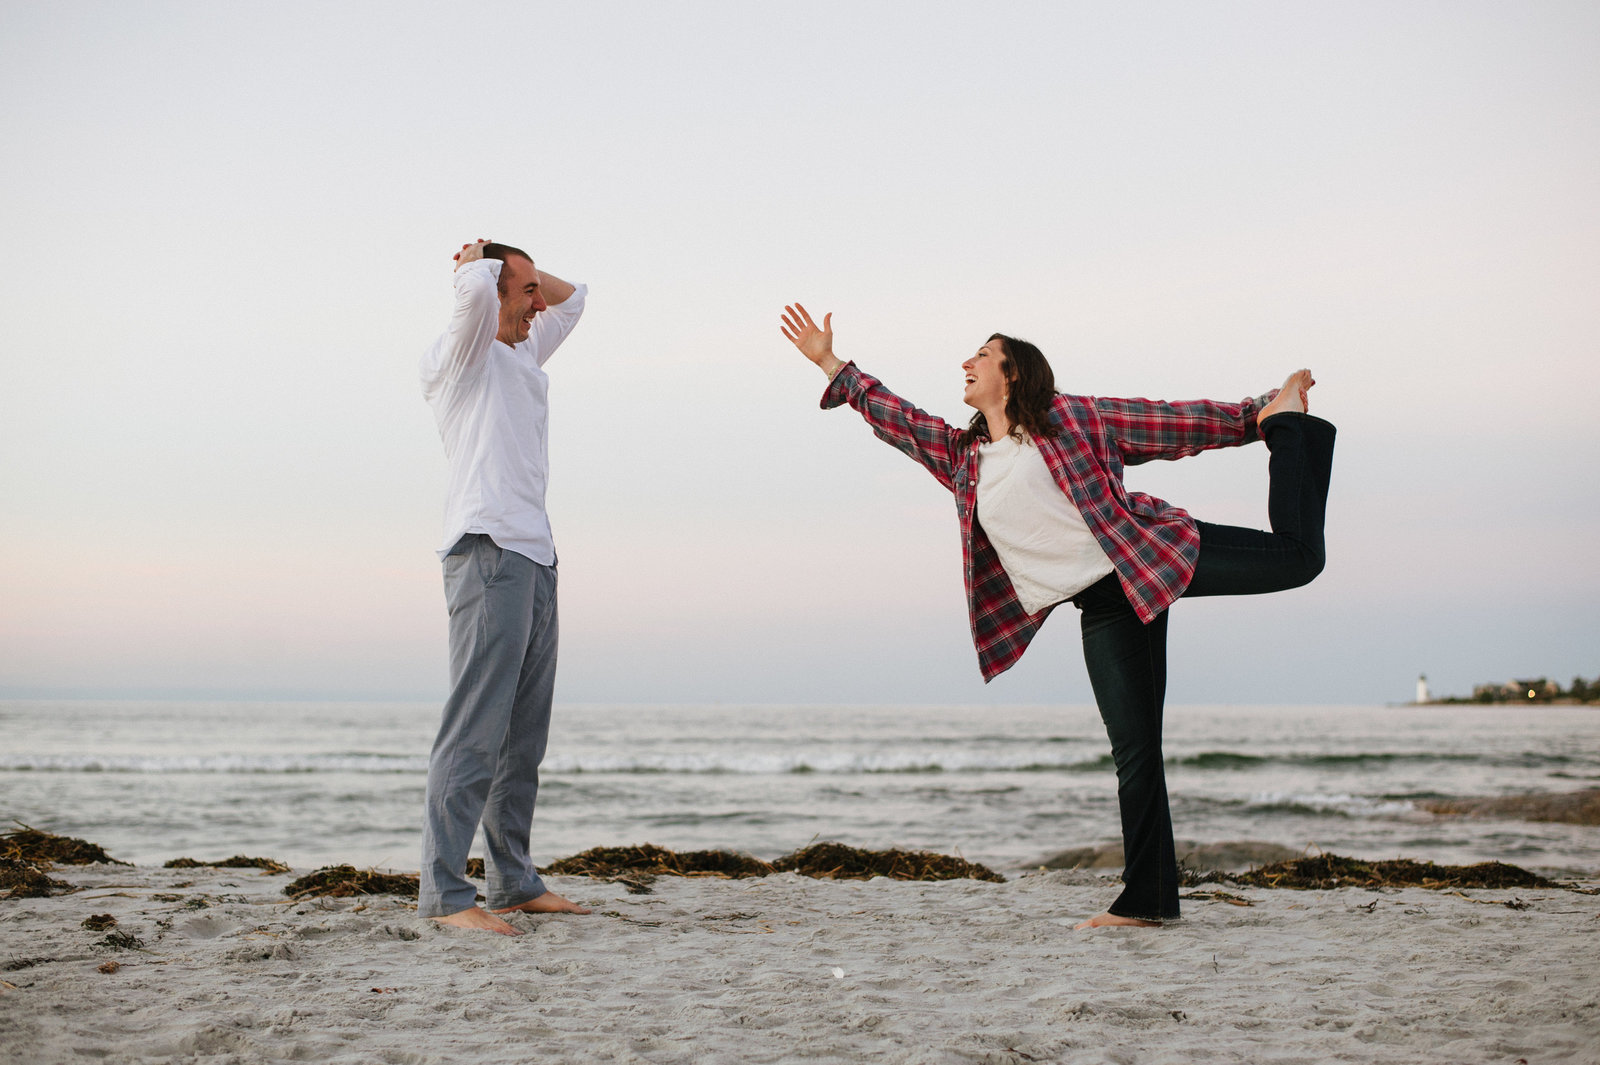 Yoga on the Beach Engagement Session